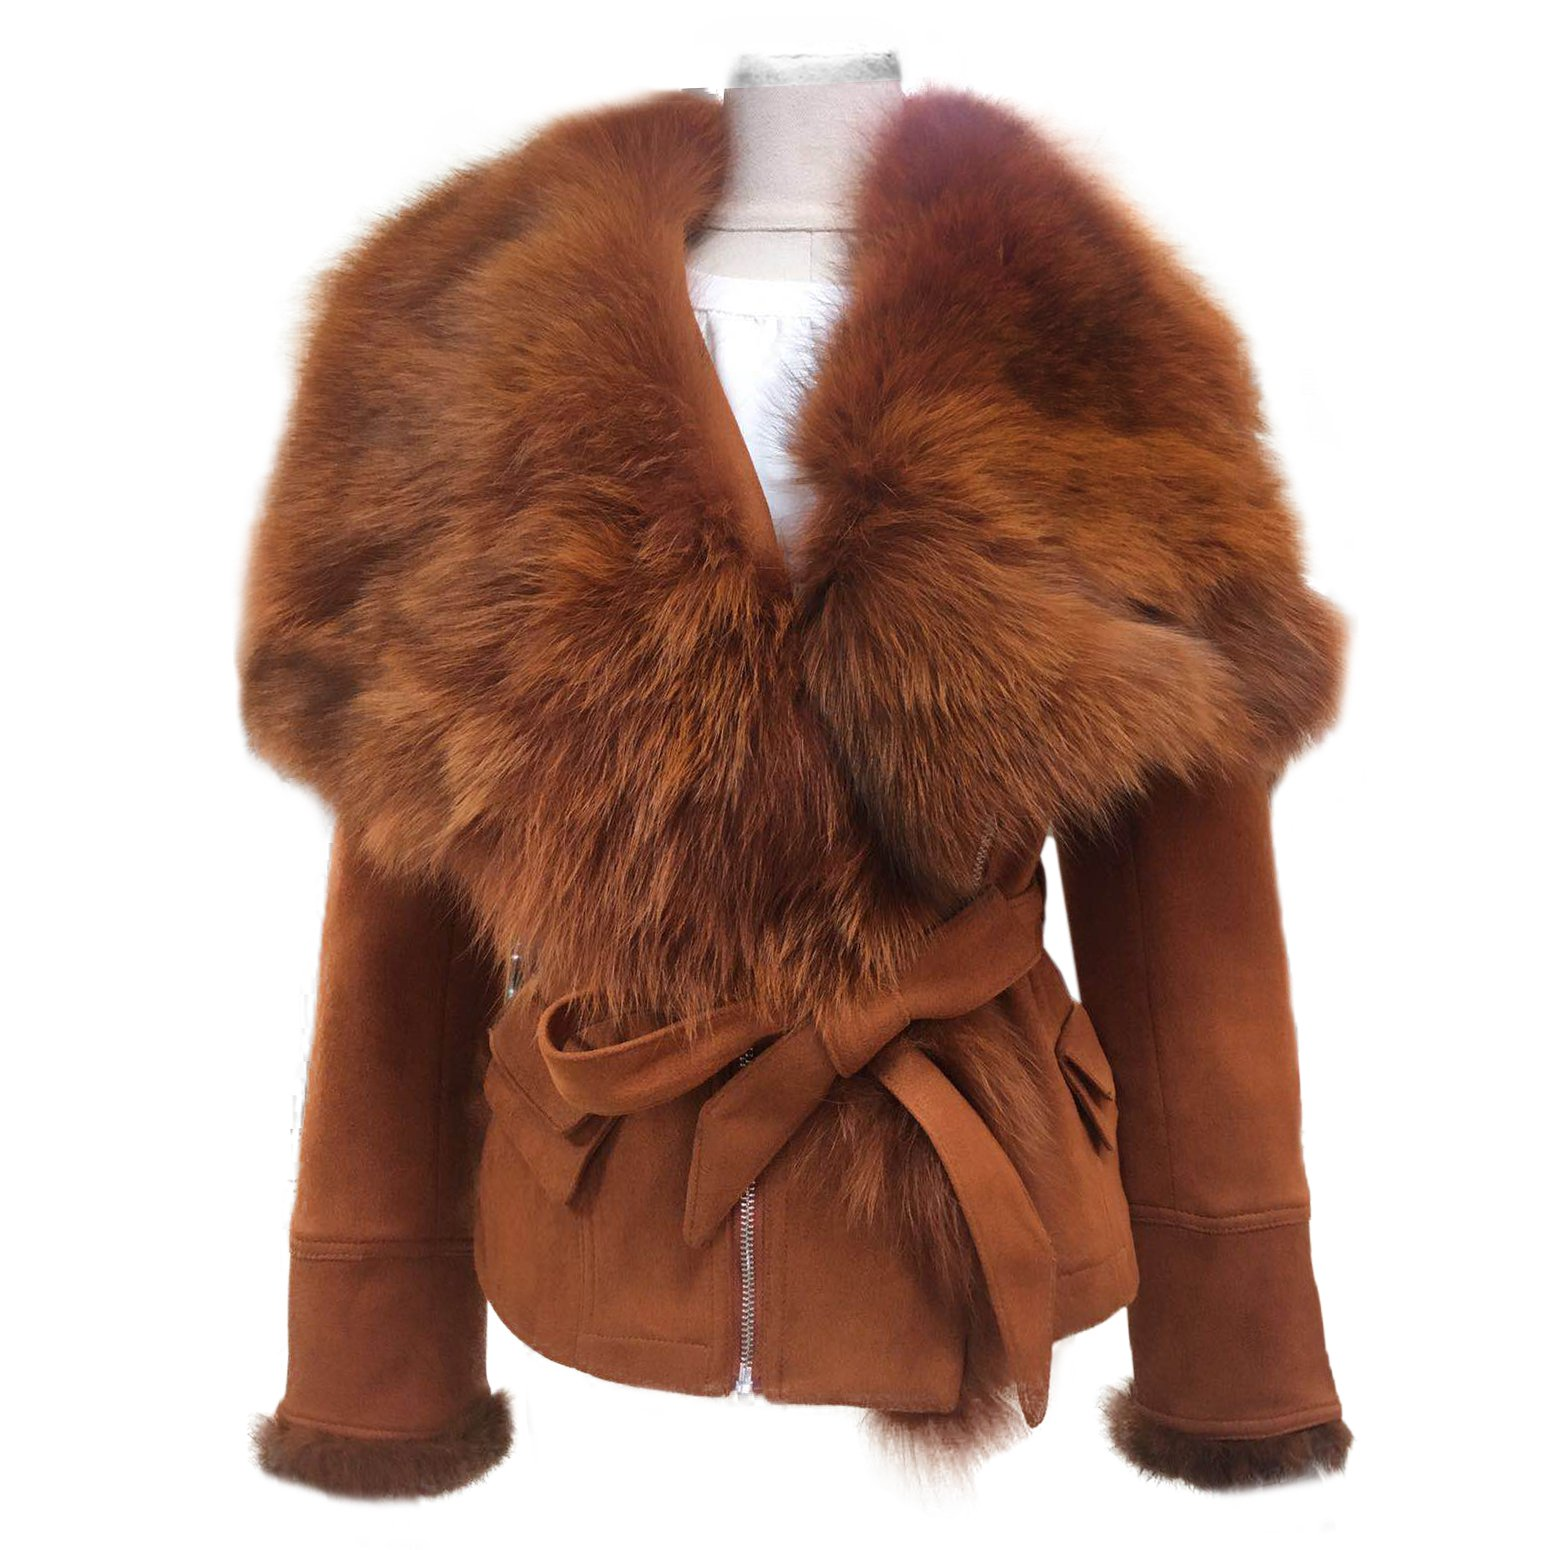 She'sModa Real Fox Fur Collar Coat With Belt Slim Fit Women's Winter Suede Caramel Leather Jackets XL